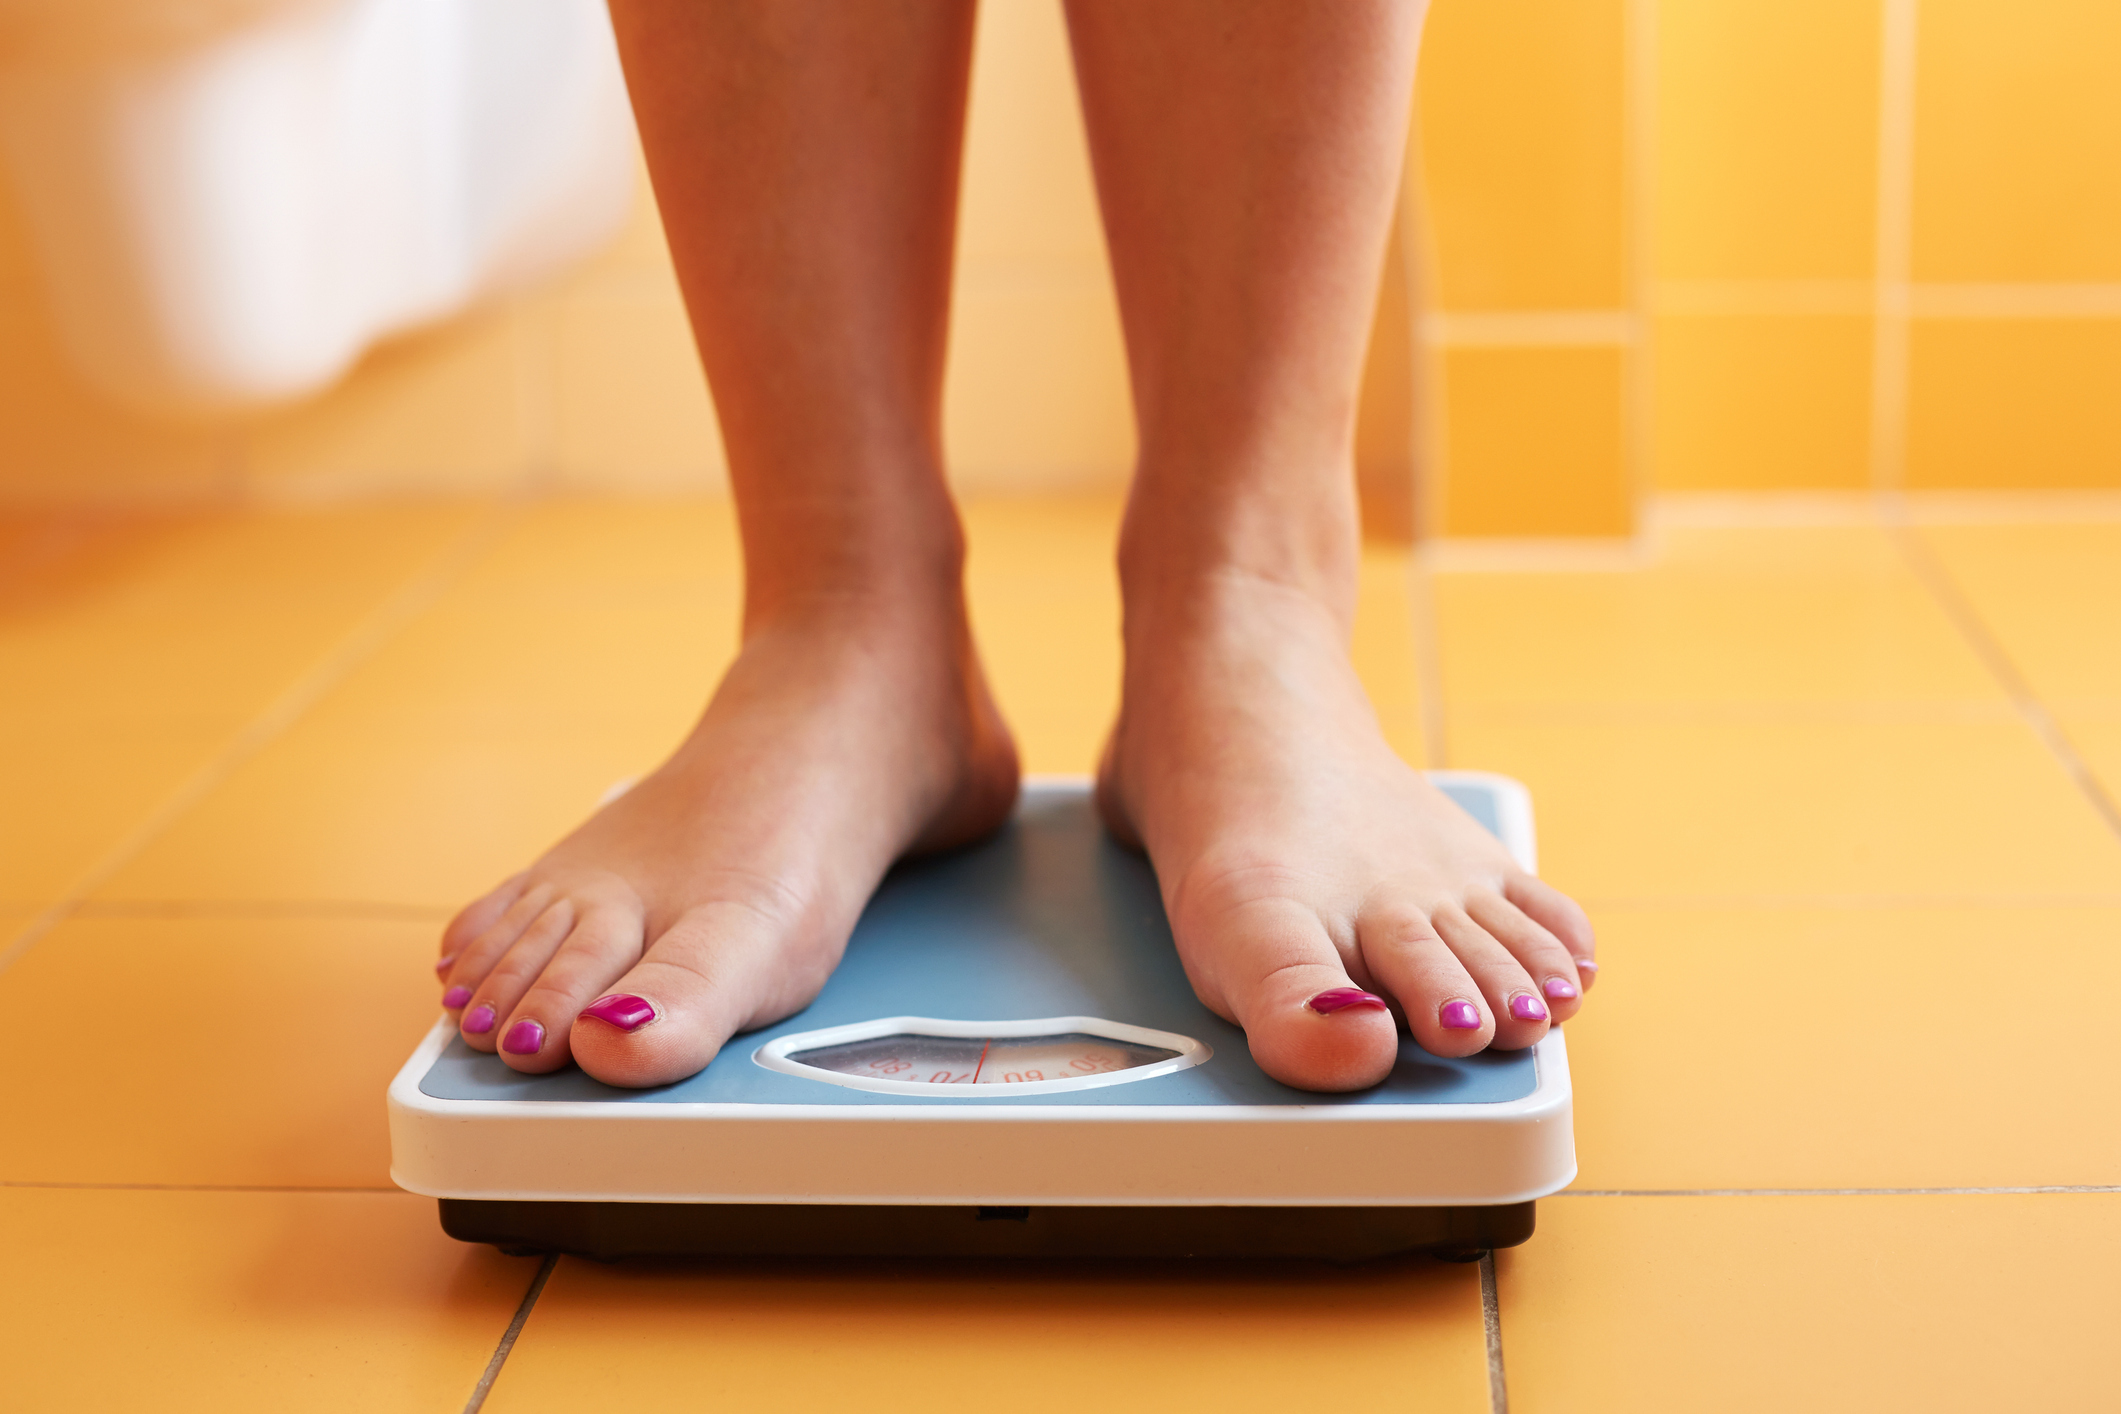 Acknowledge Your Weight Without Judgment or Praise